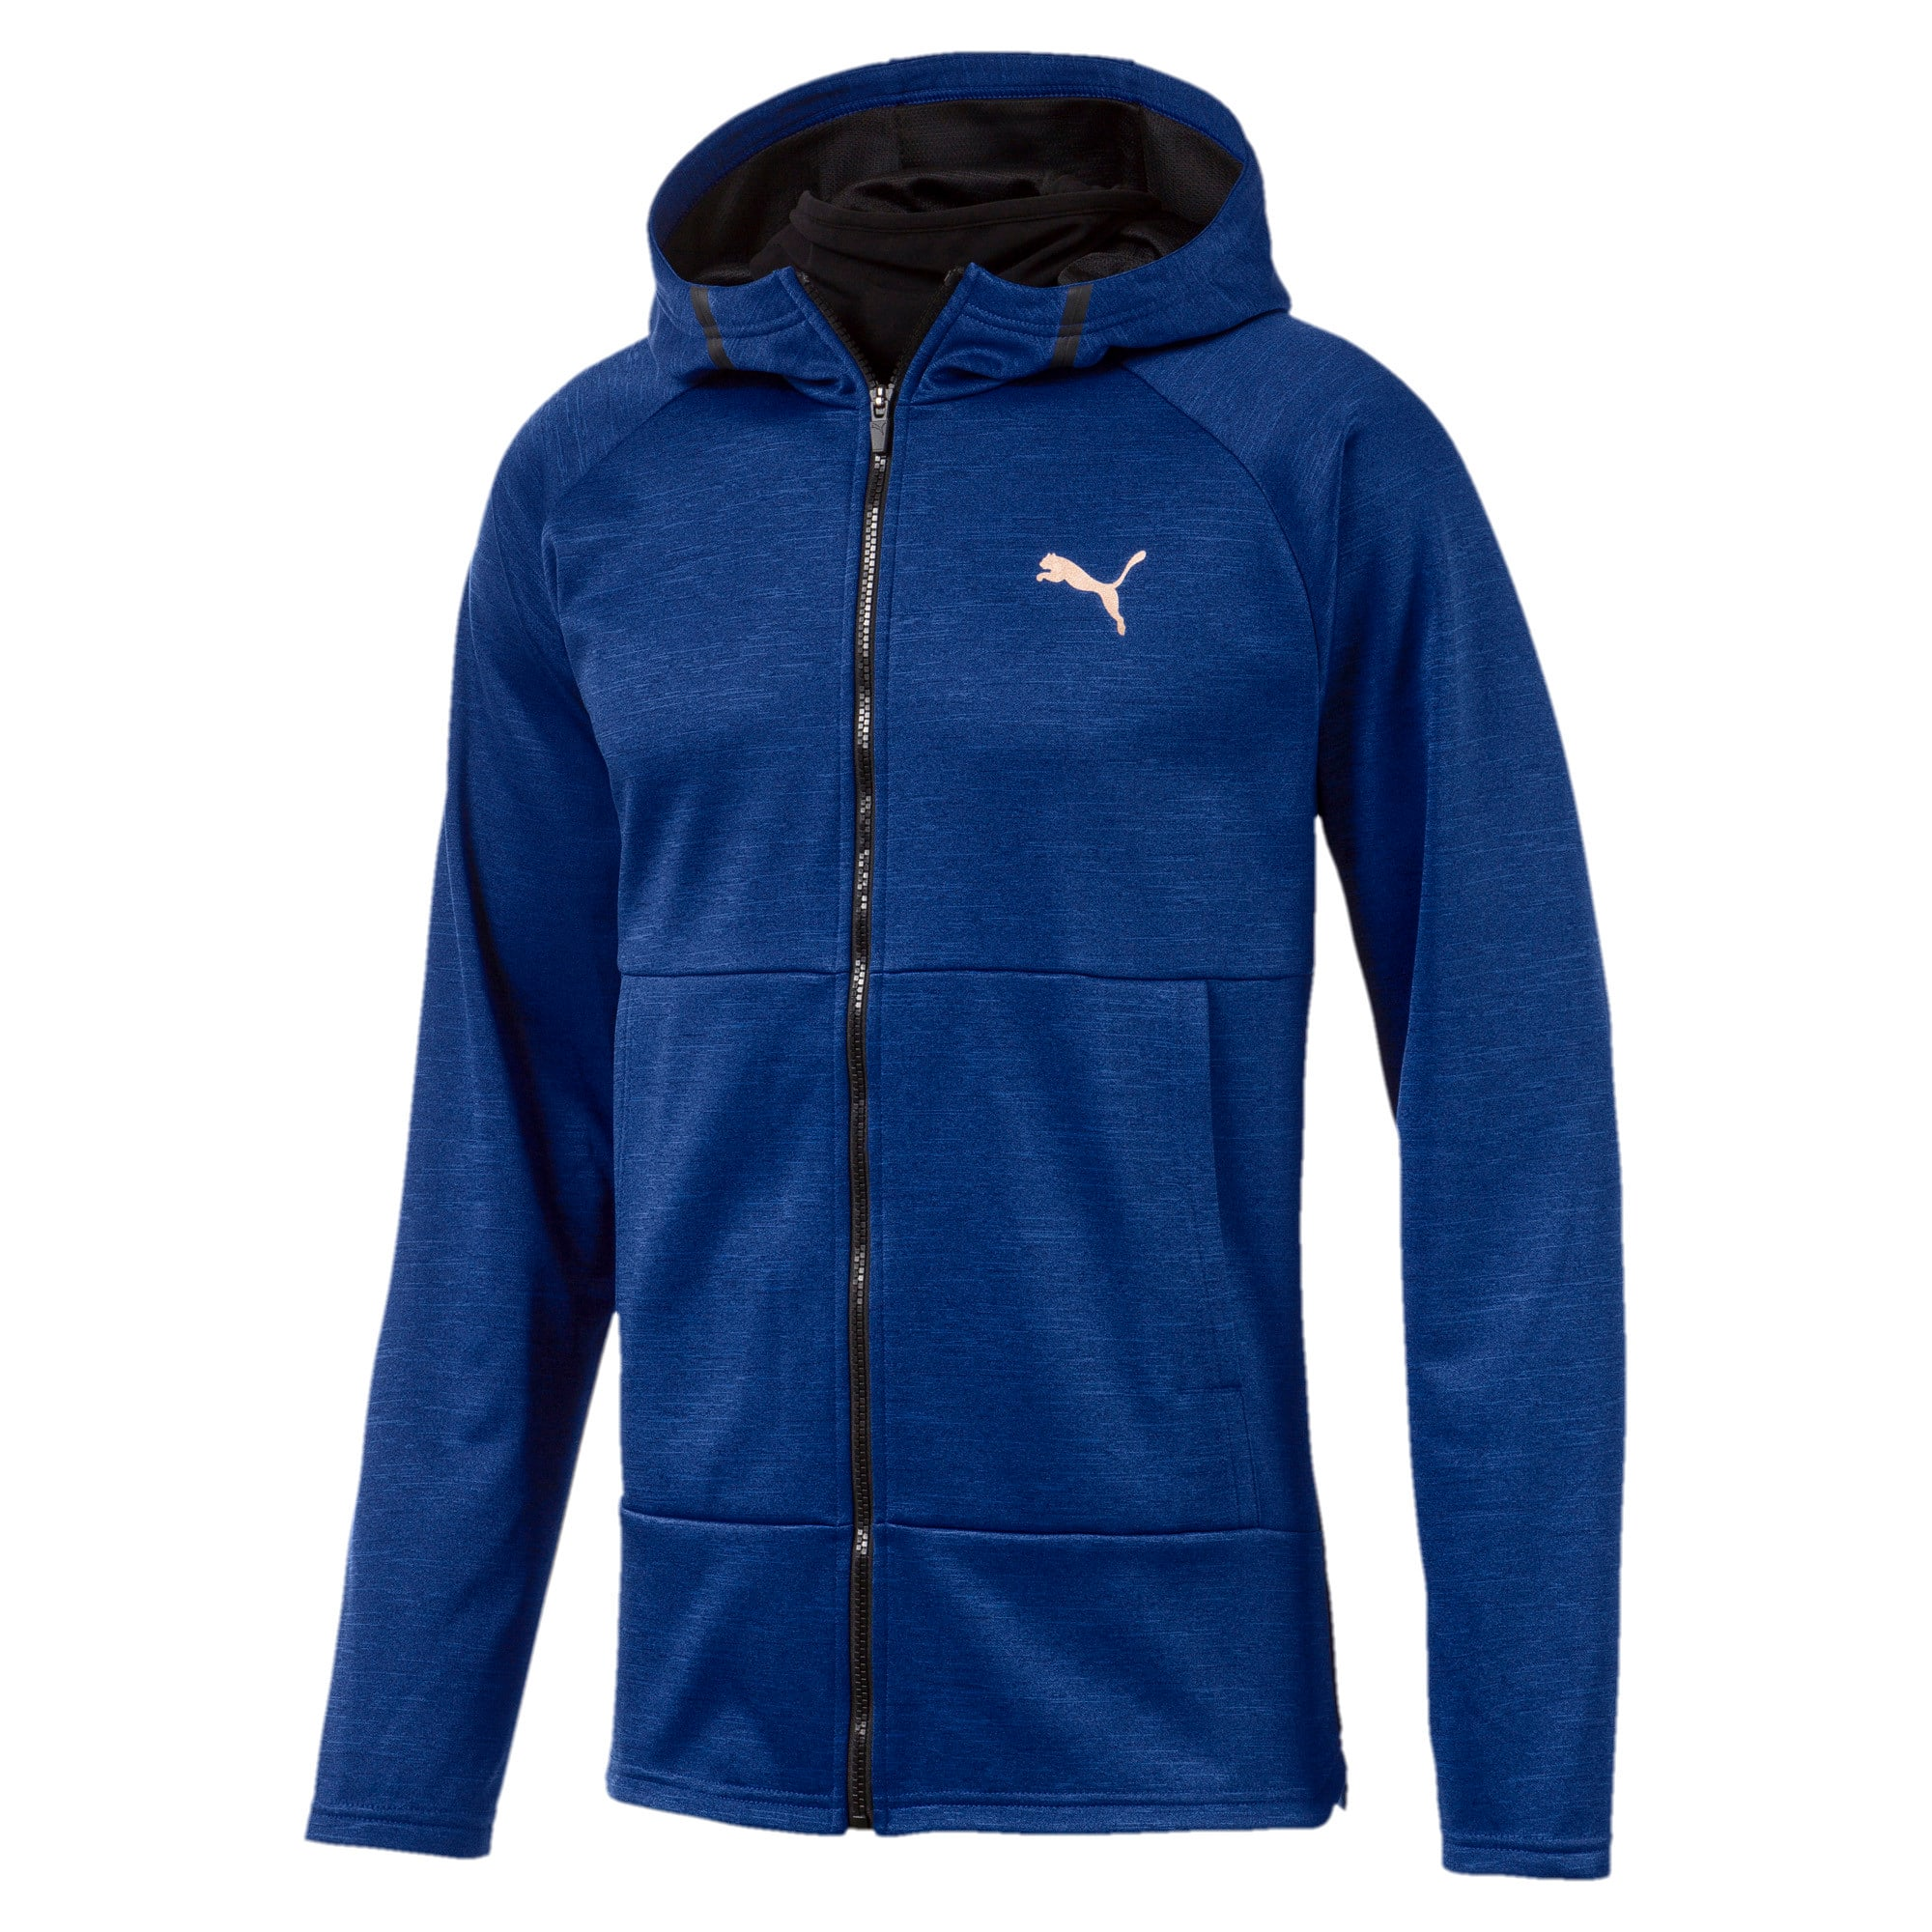 Thumbnail 4 of Q4 BND Tech Protect Jacket Puma Black He, Sodalite Blue Heather, medium-IND